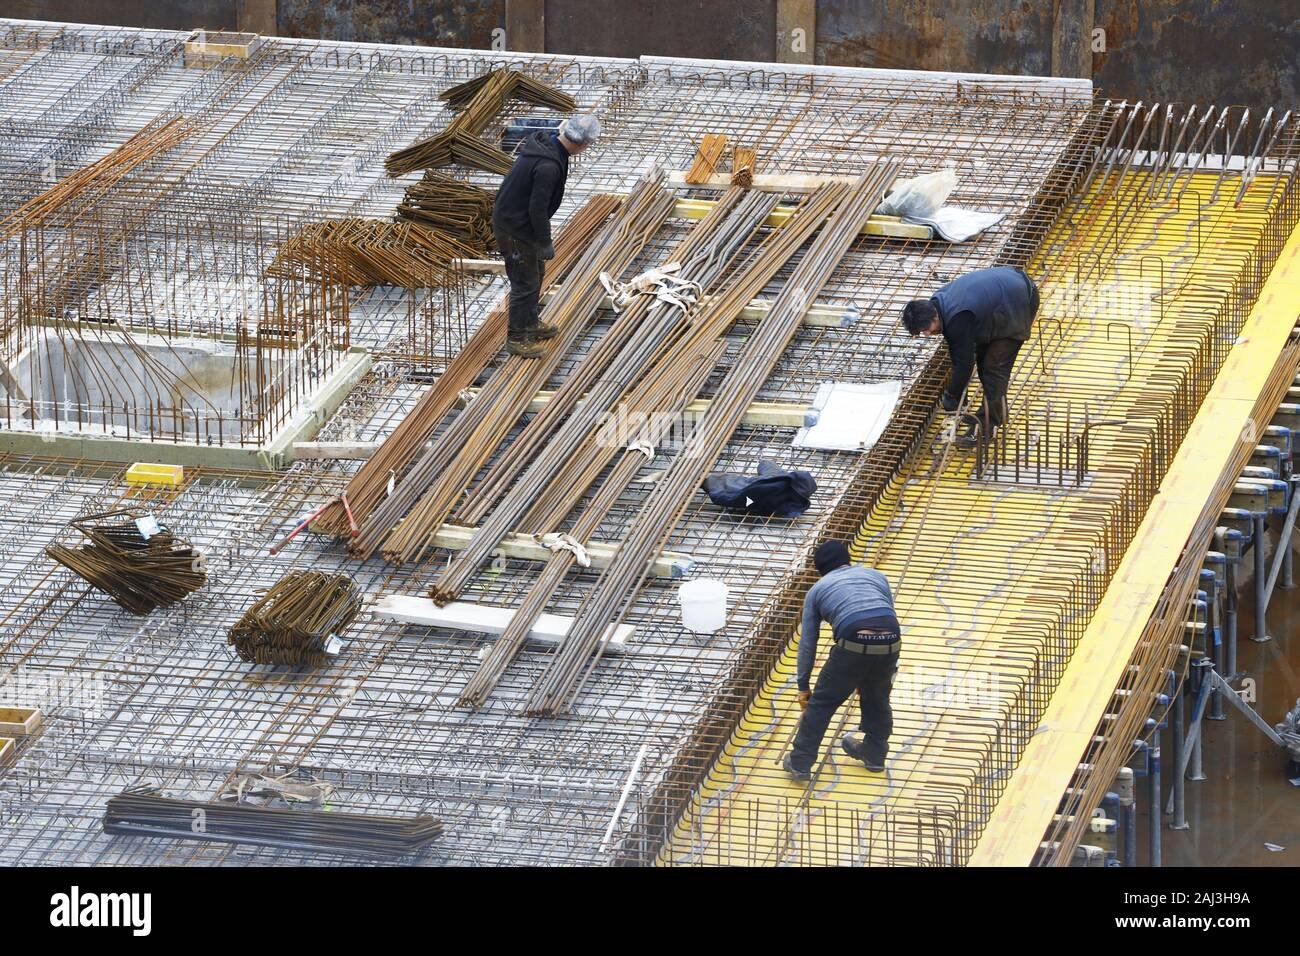 Construction site, reinforced concrete rebar, for a building ceiling, are being assembled, Stock Photo